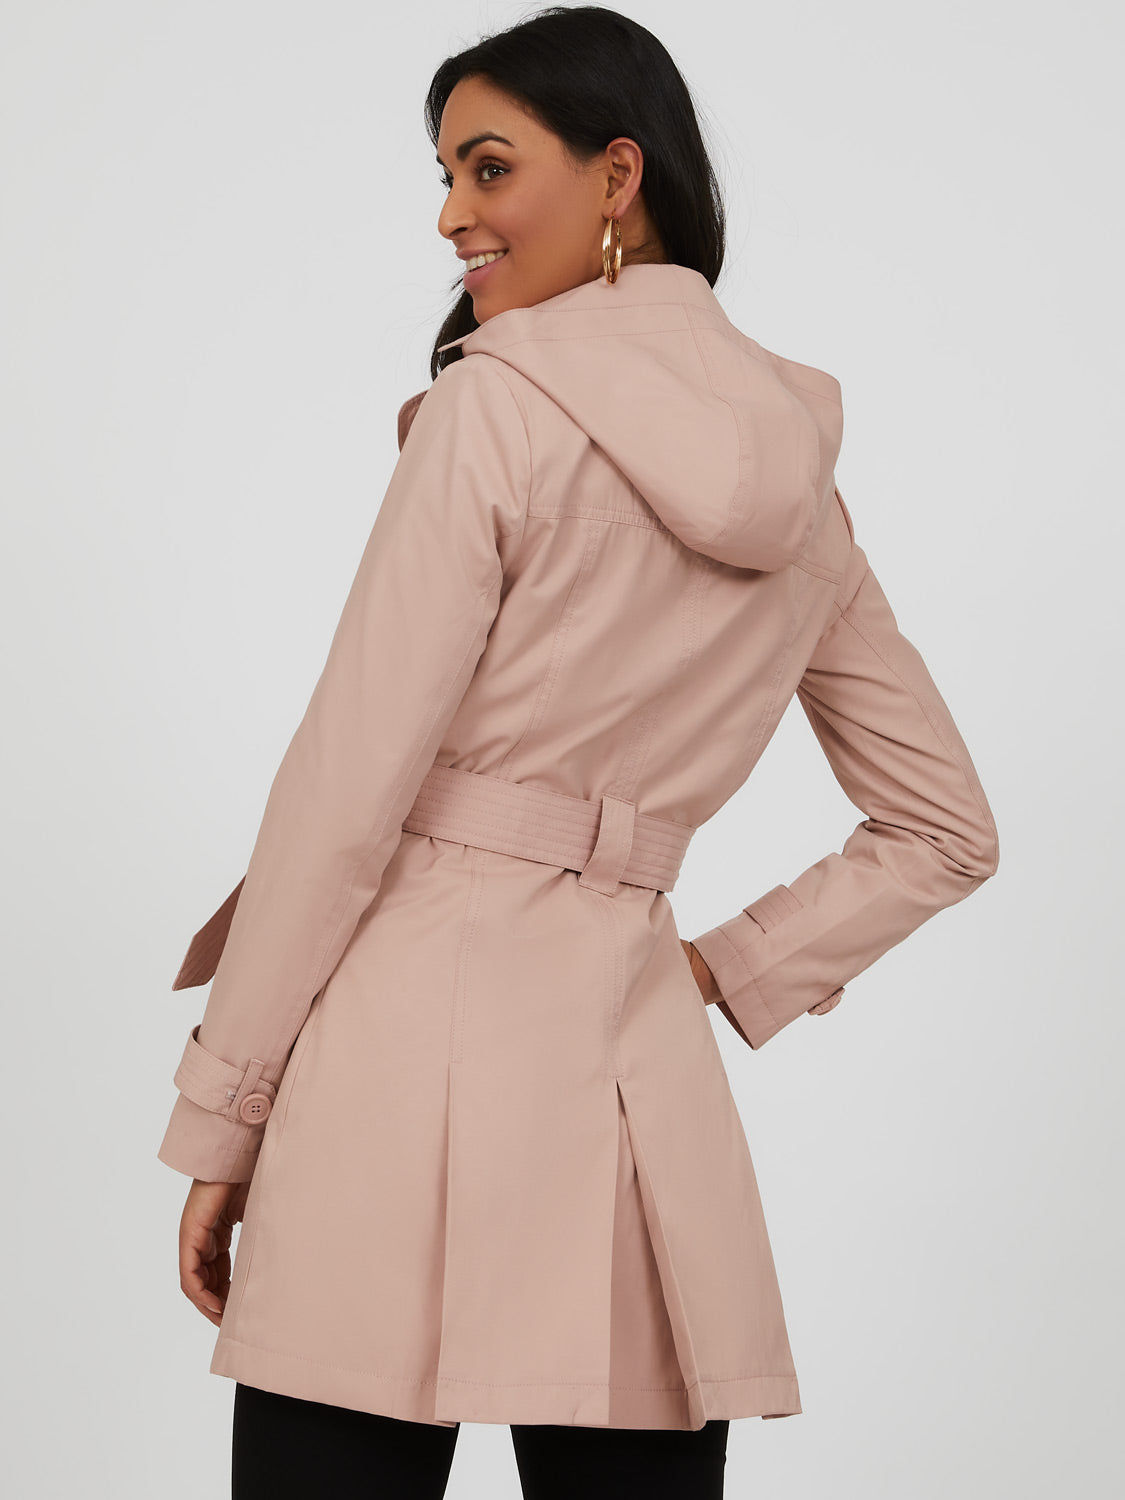 Belted Lapel Collar Trench Coat